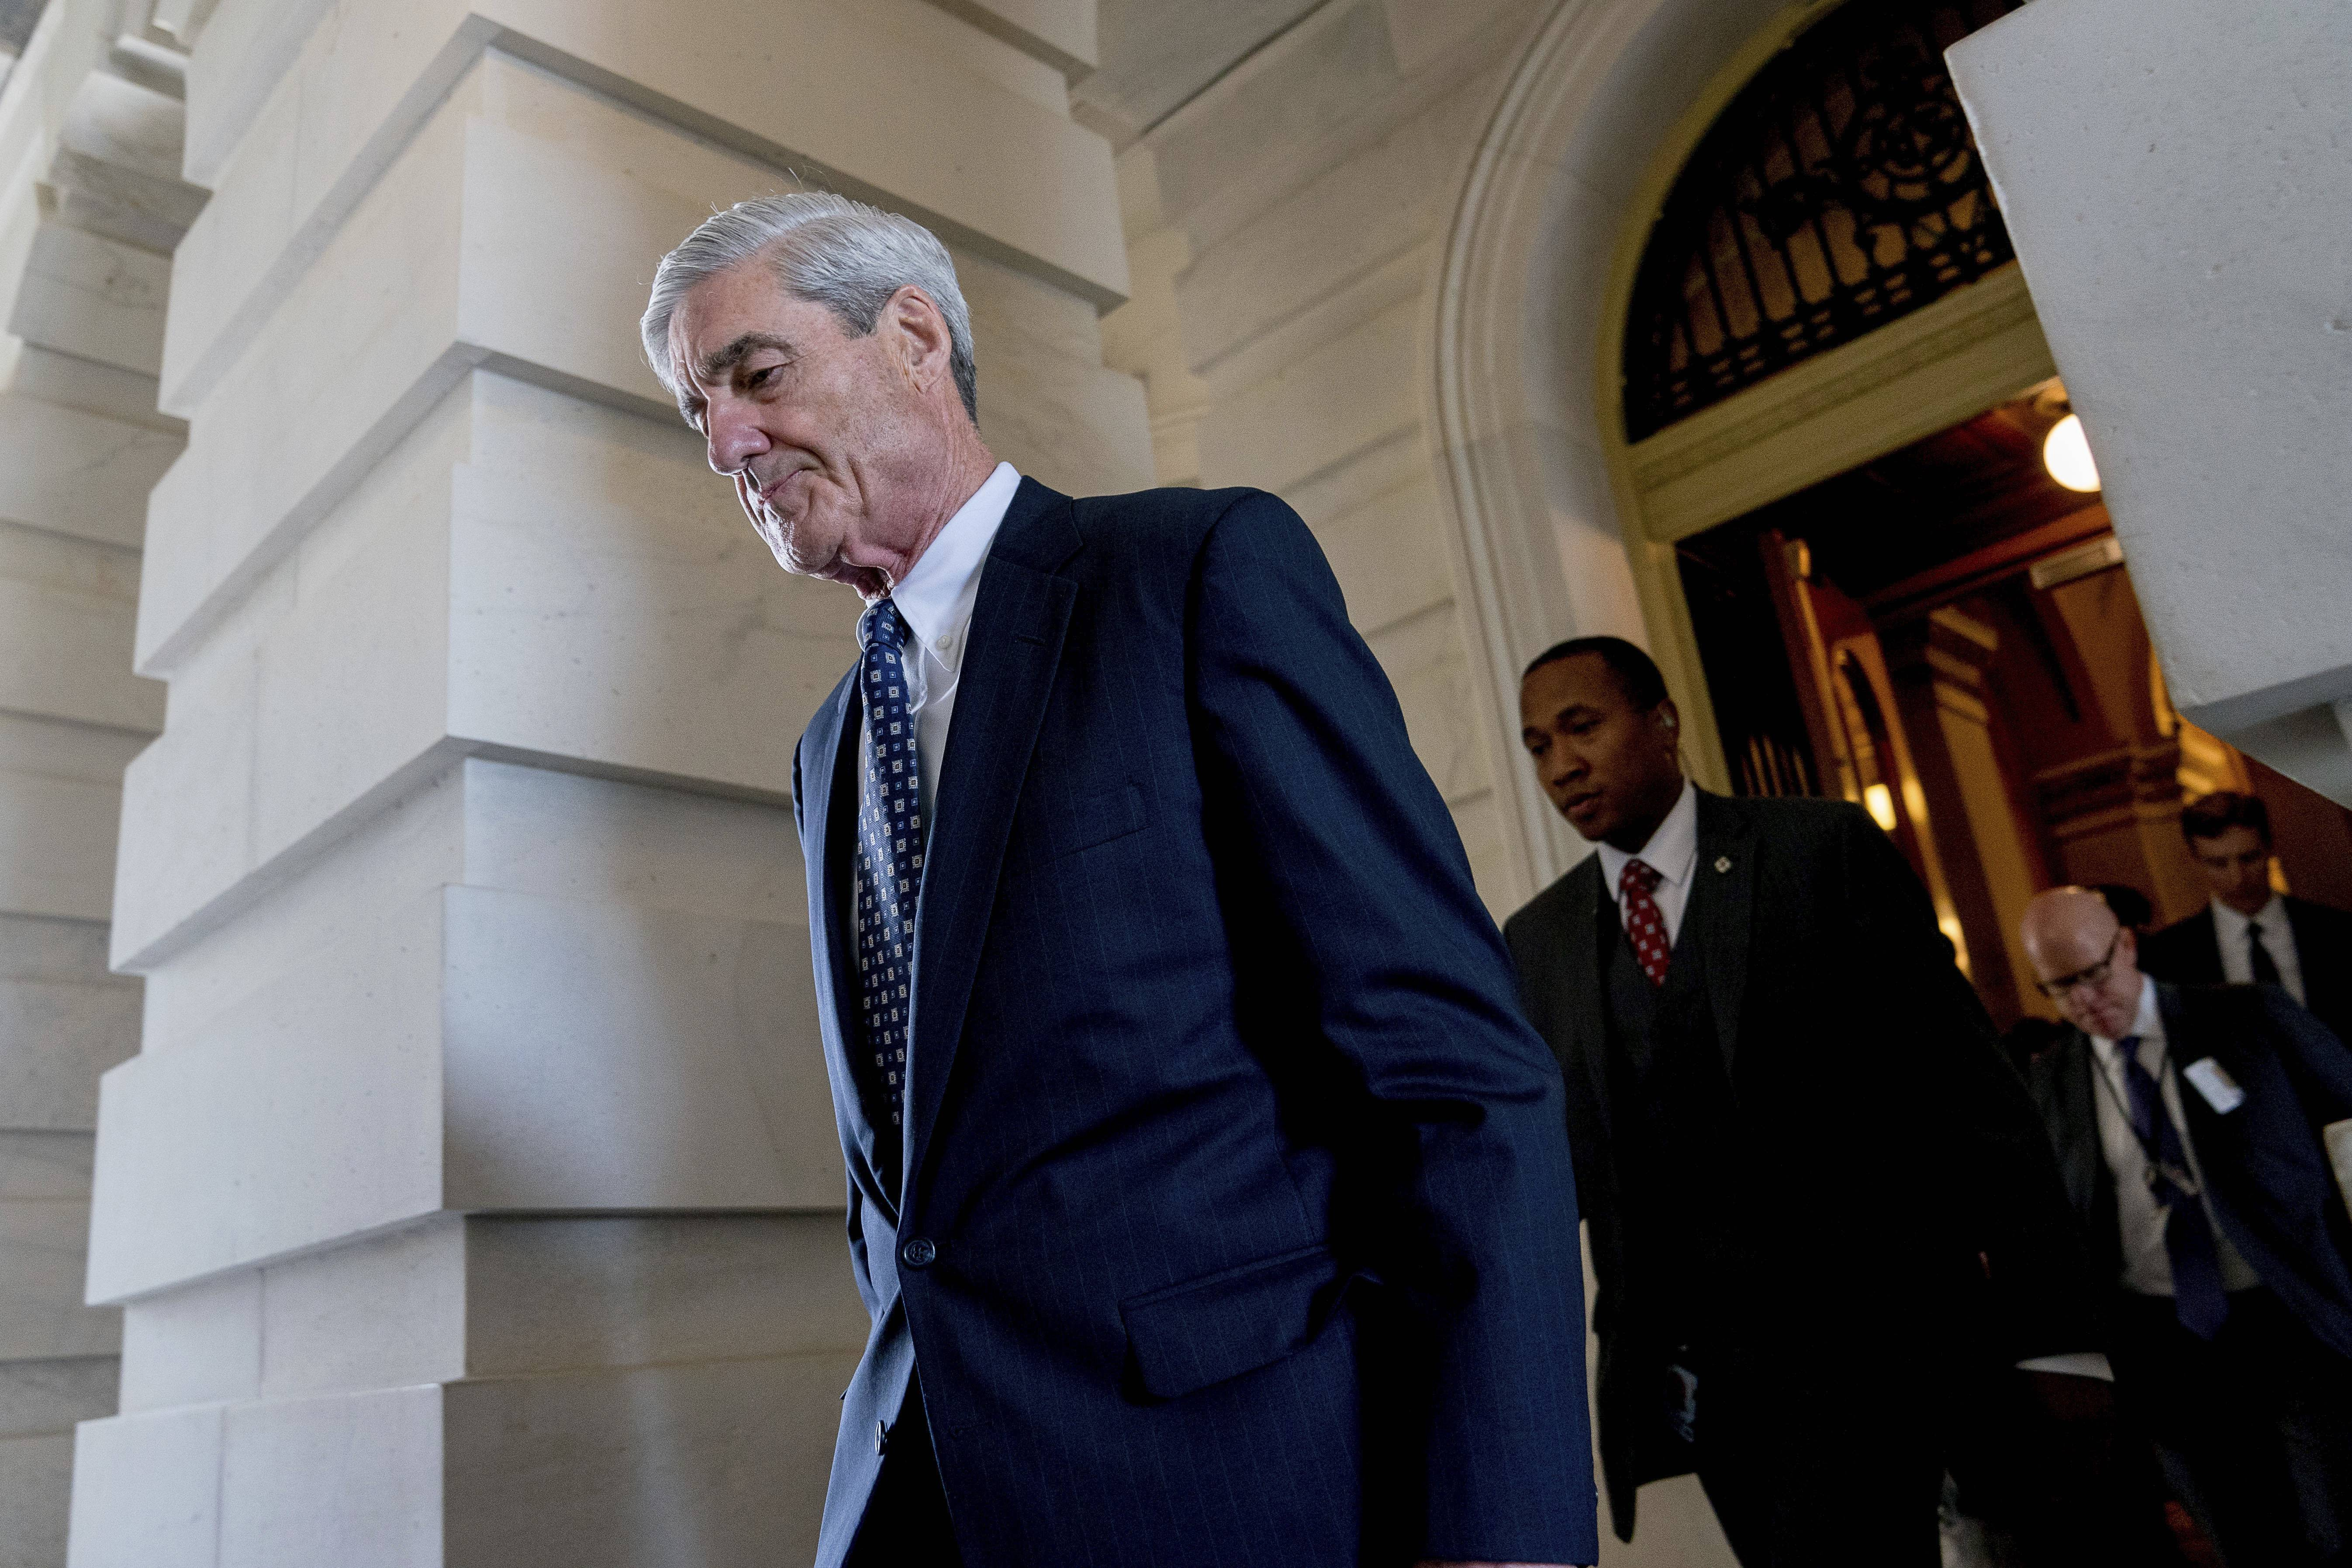 FILE - In this June 21, 2017, file photo, former FBI Director Robert Mueller, the special counsel probing Russian interference in the 2016 election, departs Capitol Hill following a closed door meeting in Washington. Prosecutors working for Mueller are recommending a short prison sentence for a former Trump campaign adviser who lied to the FBI during the Russia probe. Mueller's team says in a new court filing that George Papadopoulos should spend at least some time incarcerated and pay a nearly $10,000 fine. His recommended sentence under federal guidelines is zero to six months, but prosecutors note a similar defendant in the case spent 30 days in jail.(AP Photo/Andrew Harnik, File)